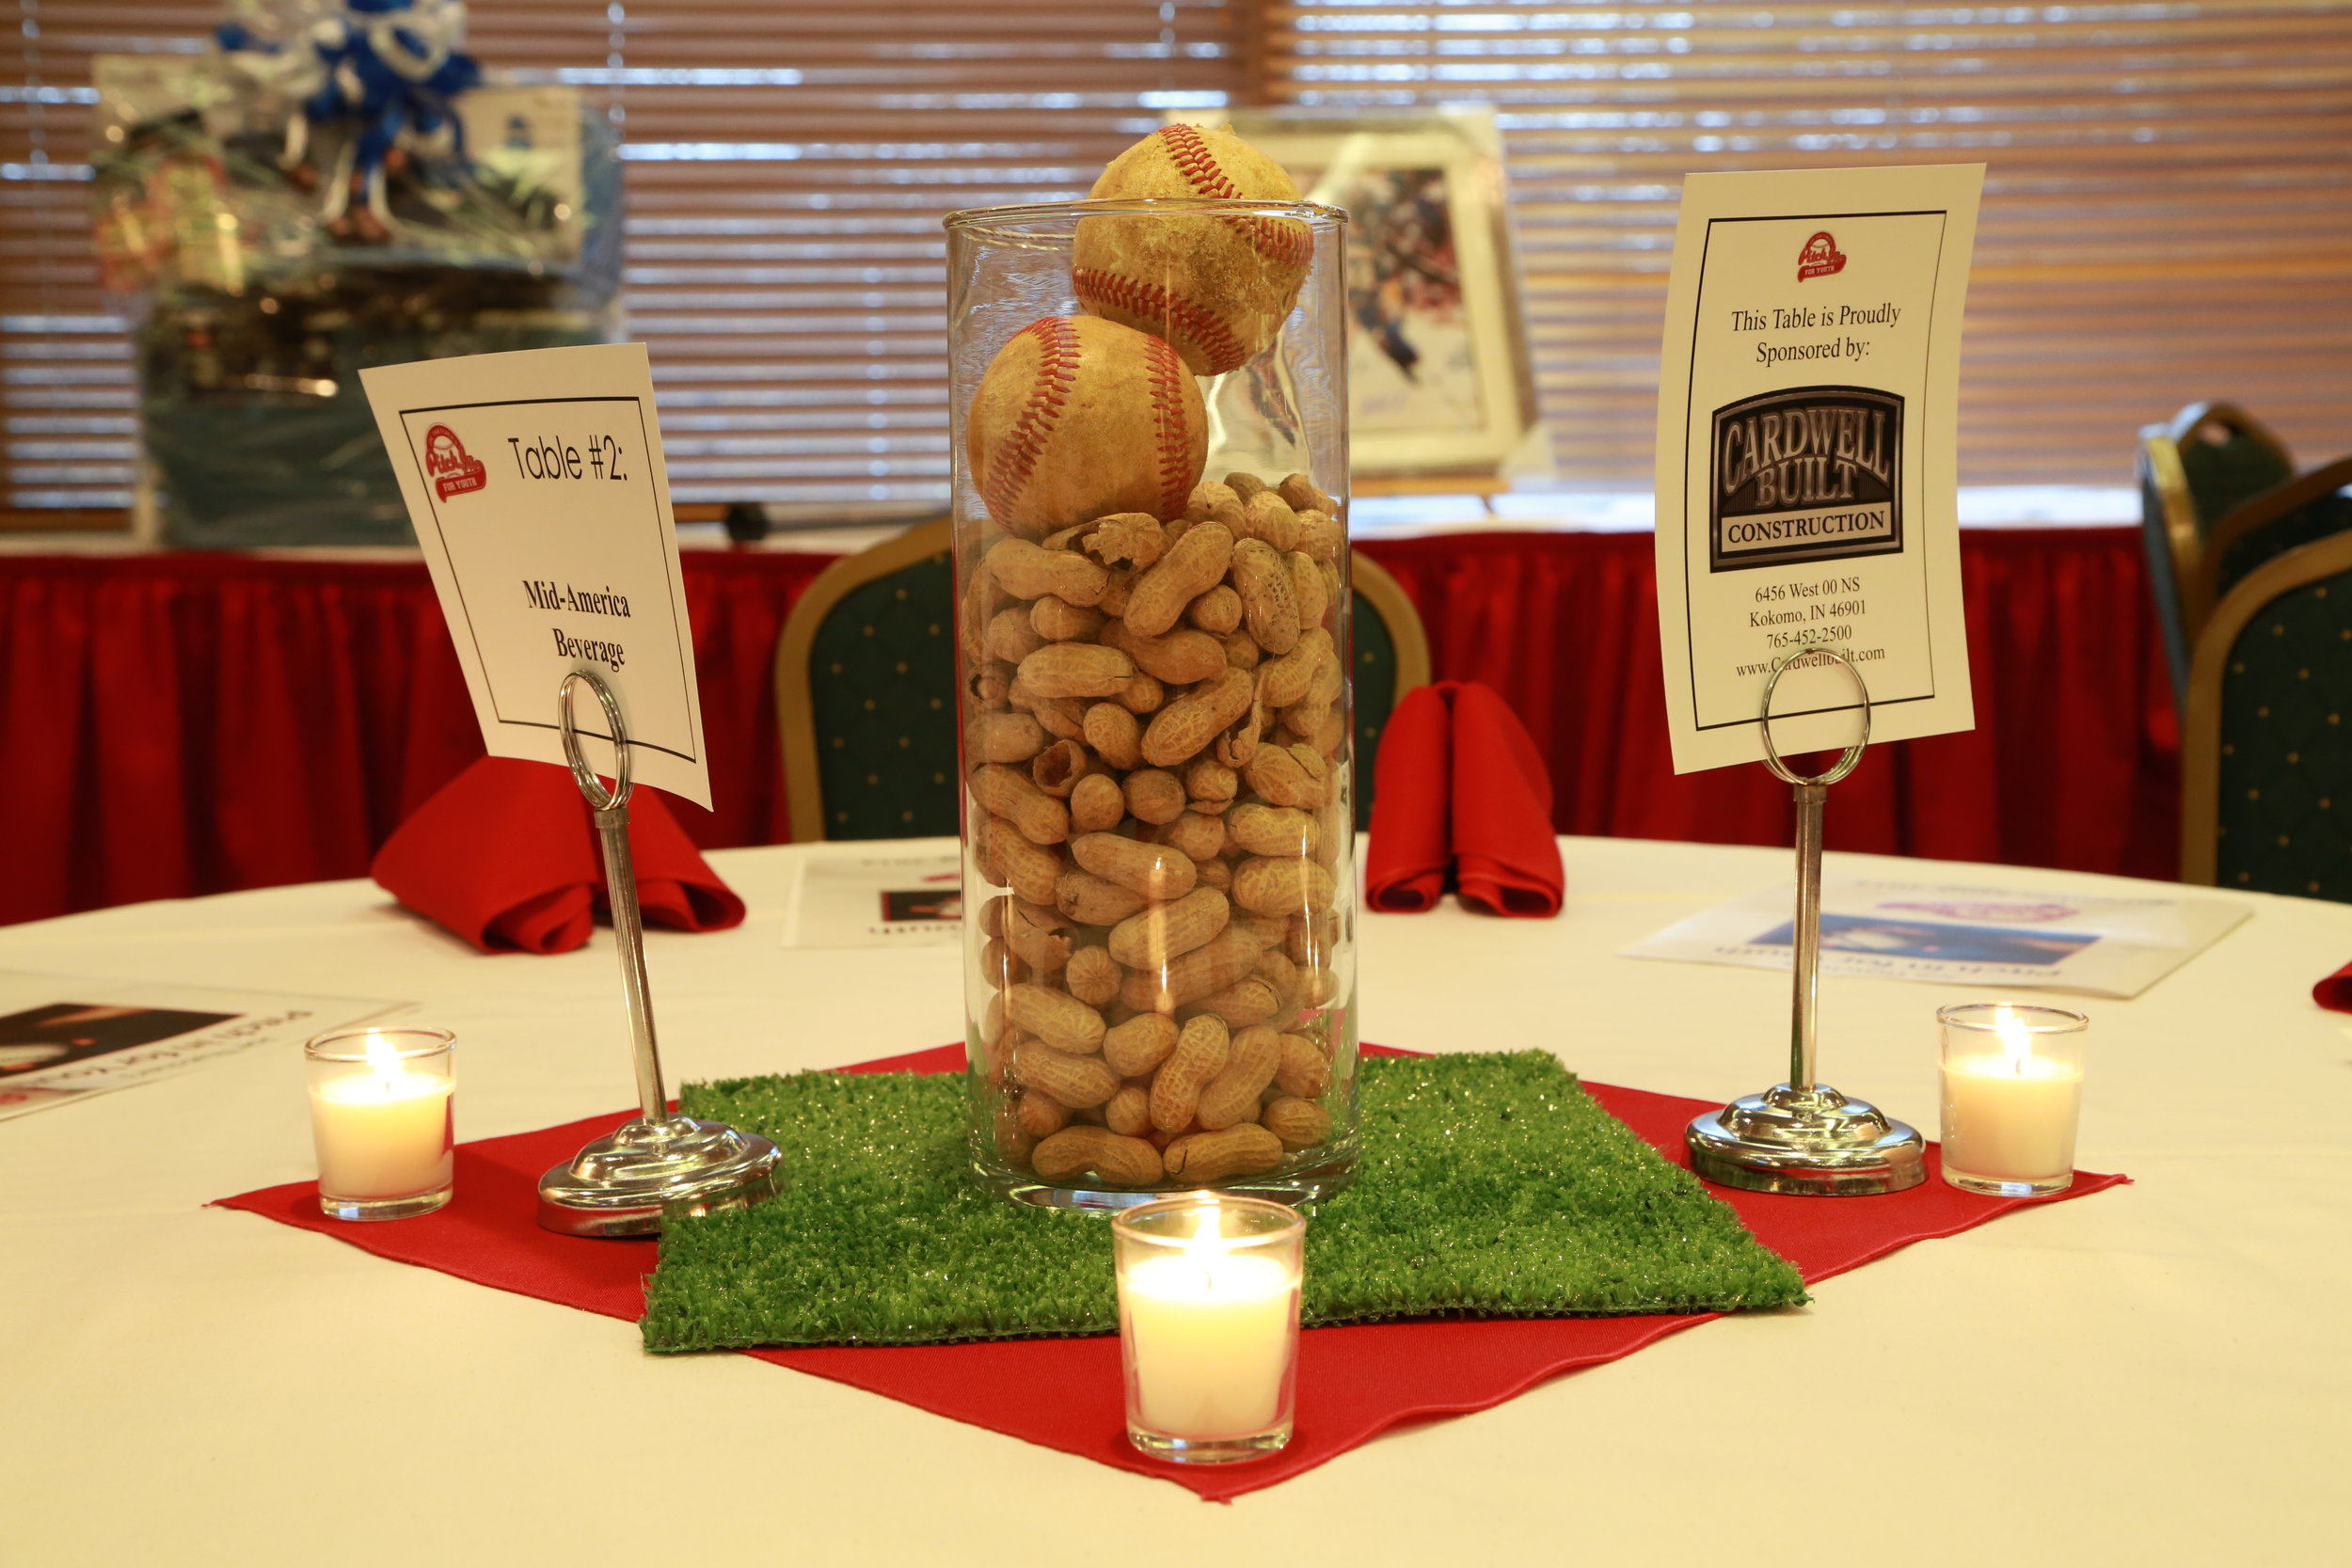 Baseball Centerpiece with peanuts and grass square